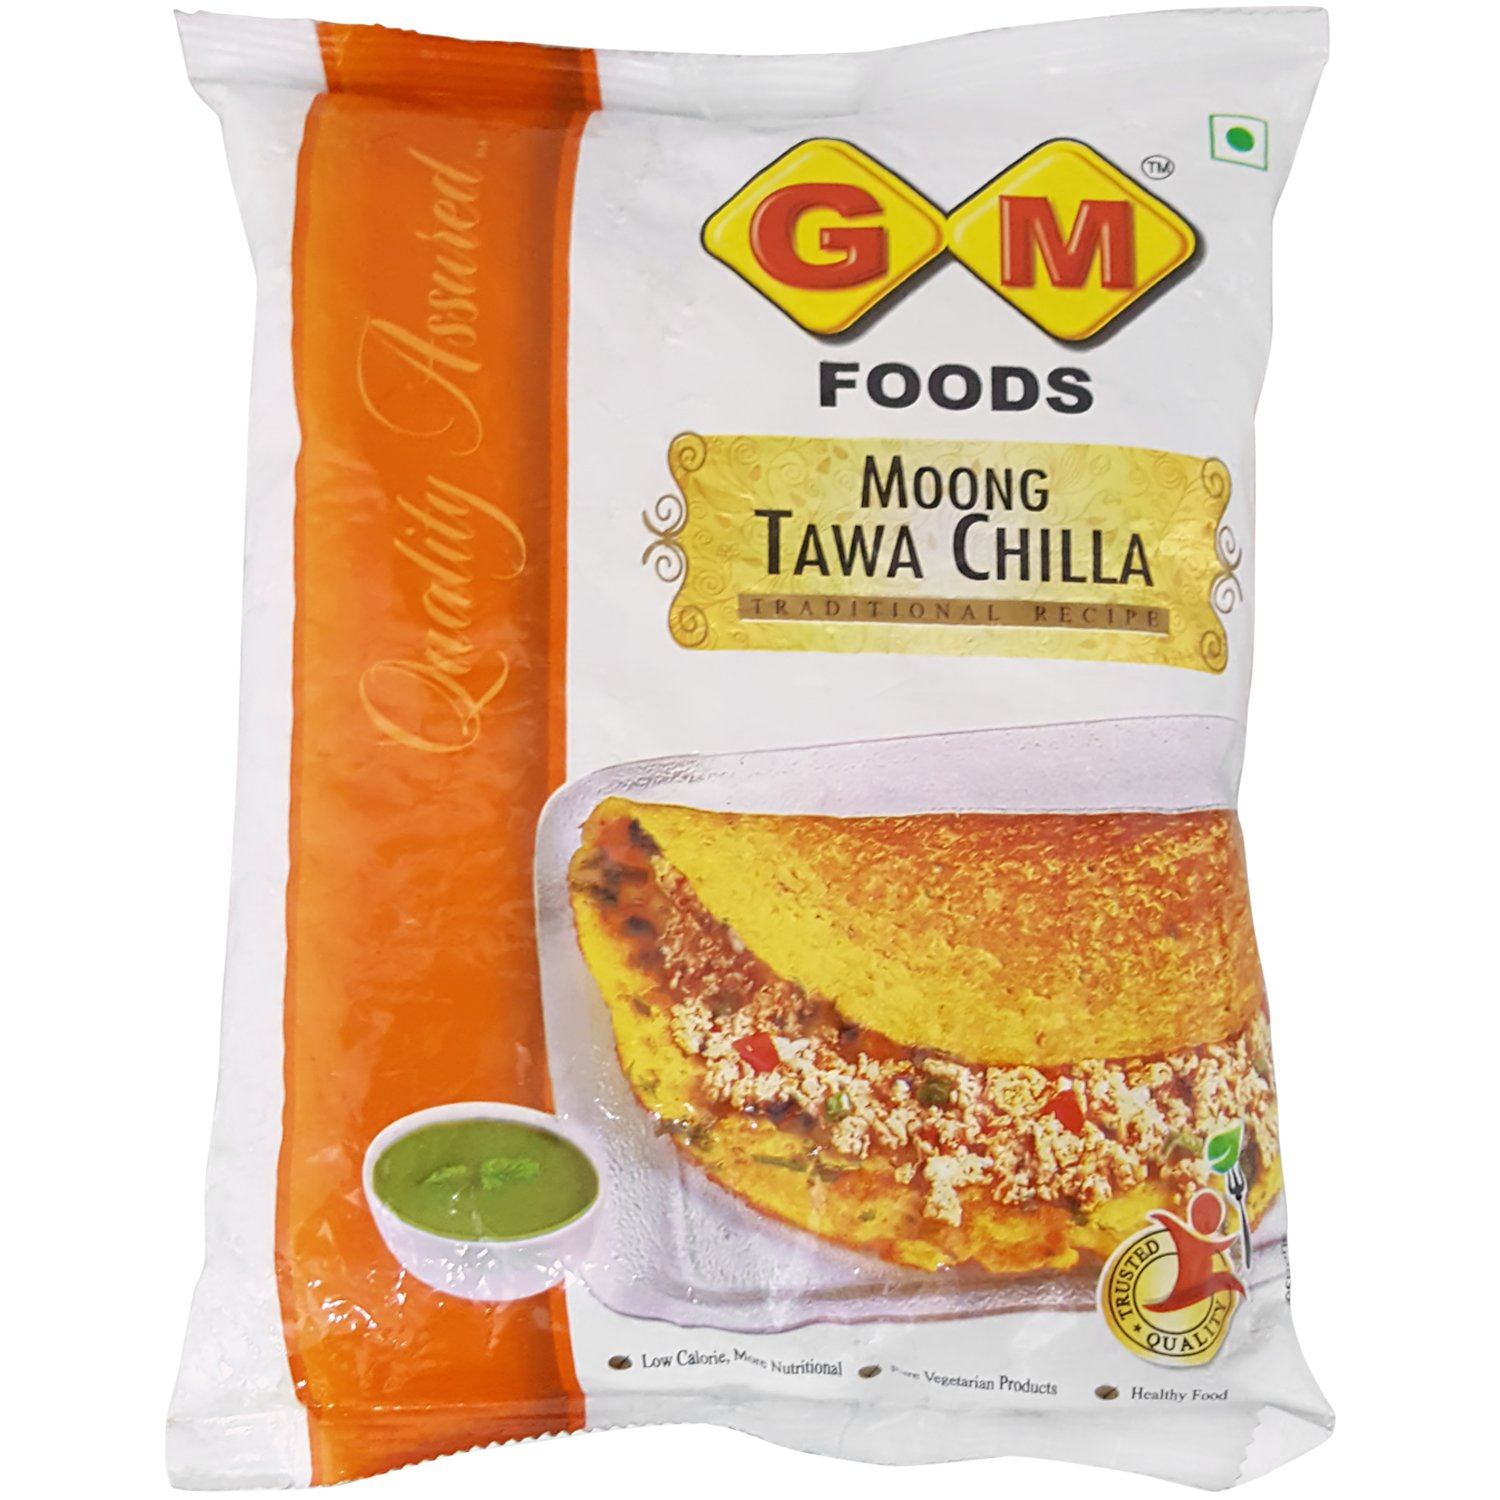 Gm Foods Flour Moong Tawa Chilla 400g Pouch Amazon In Grocery Gourmet Foods